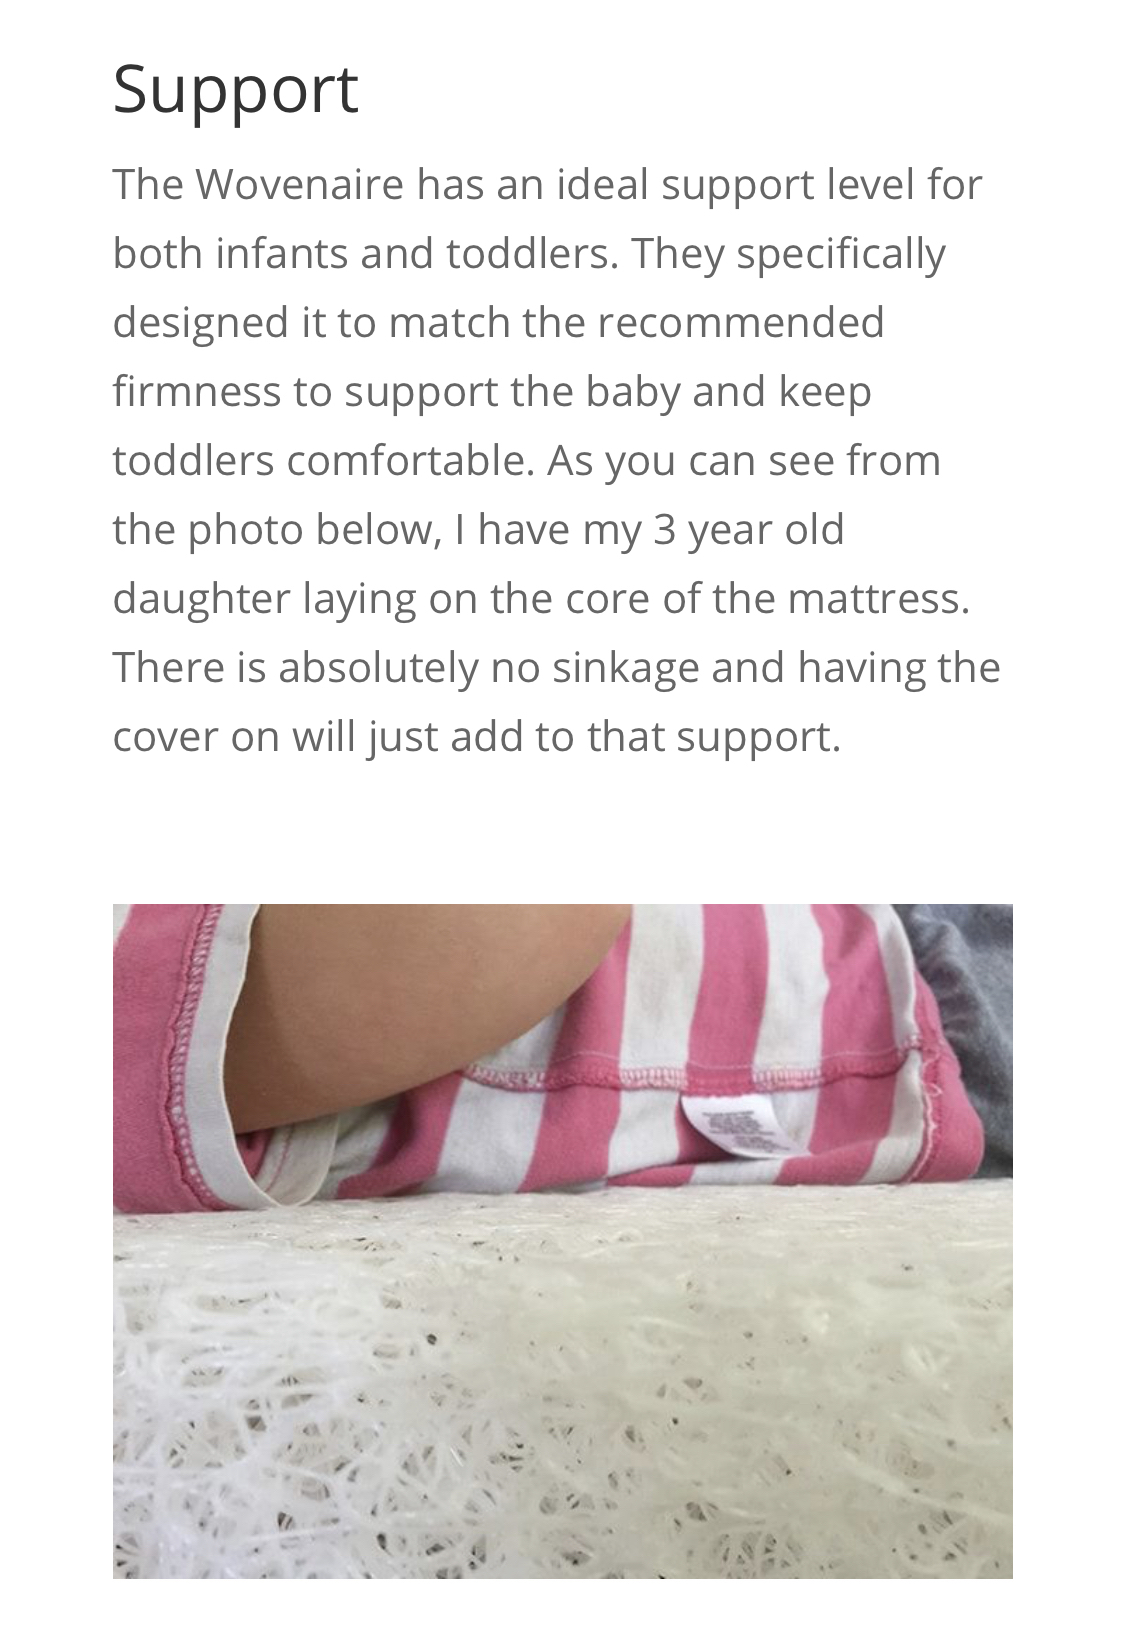 Newton Breathable Mattress Reviews Recommendations On A Crib Mattress July 2019 Babies Forums